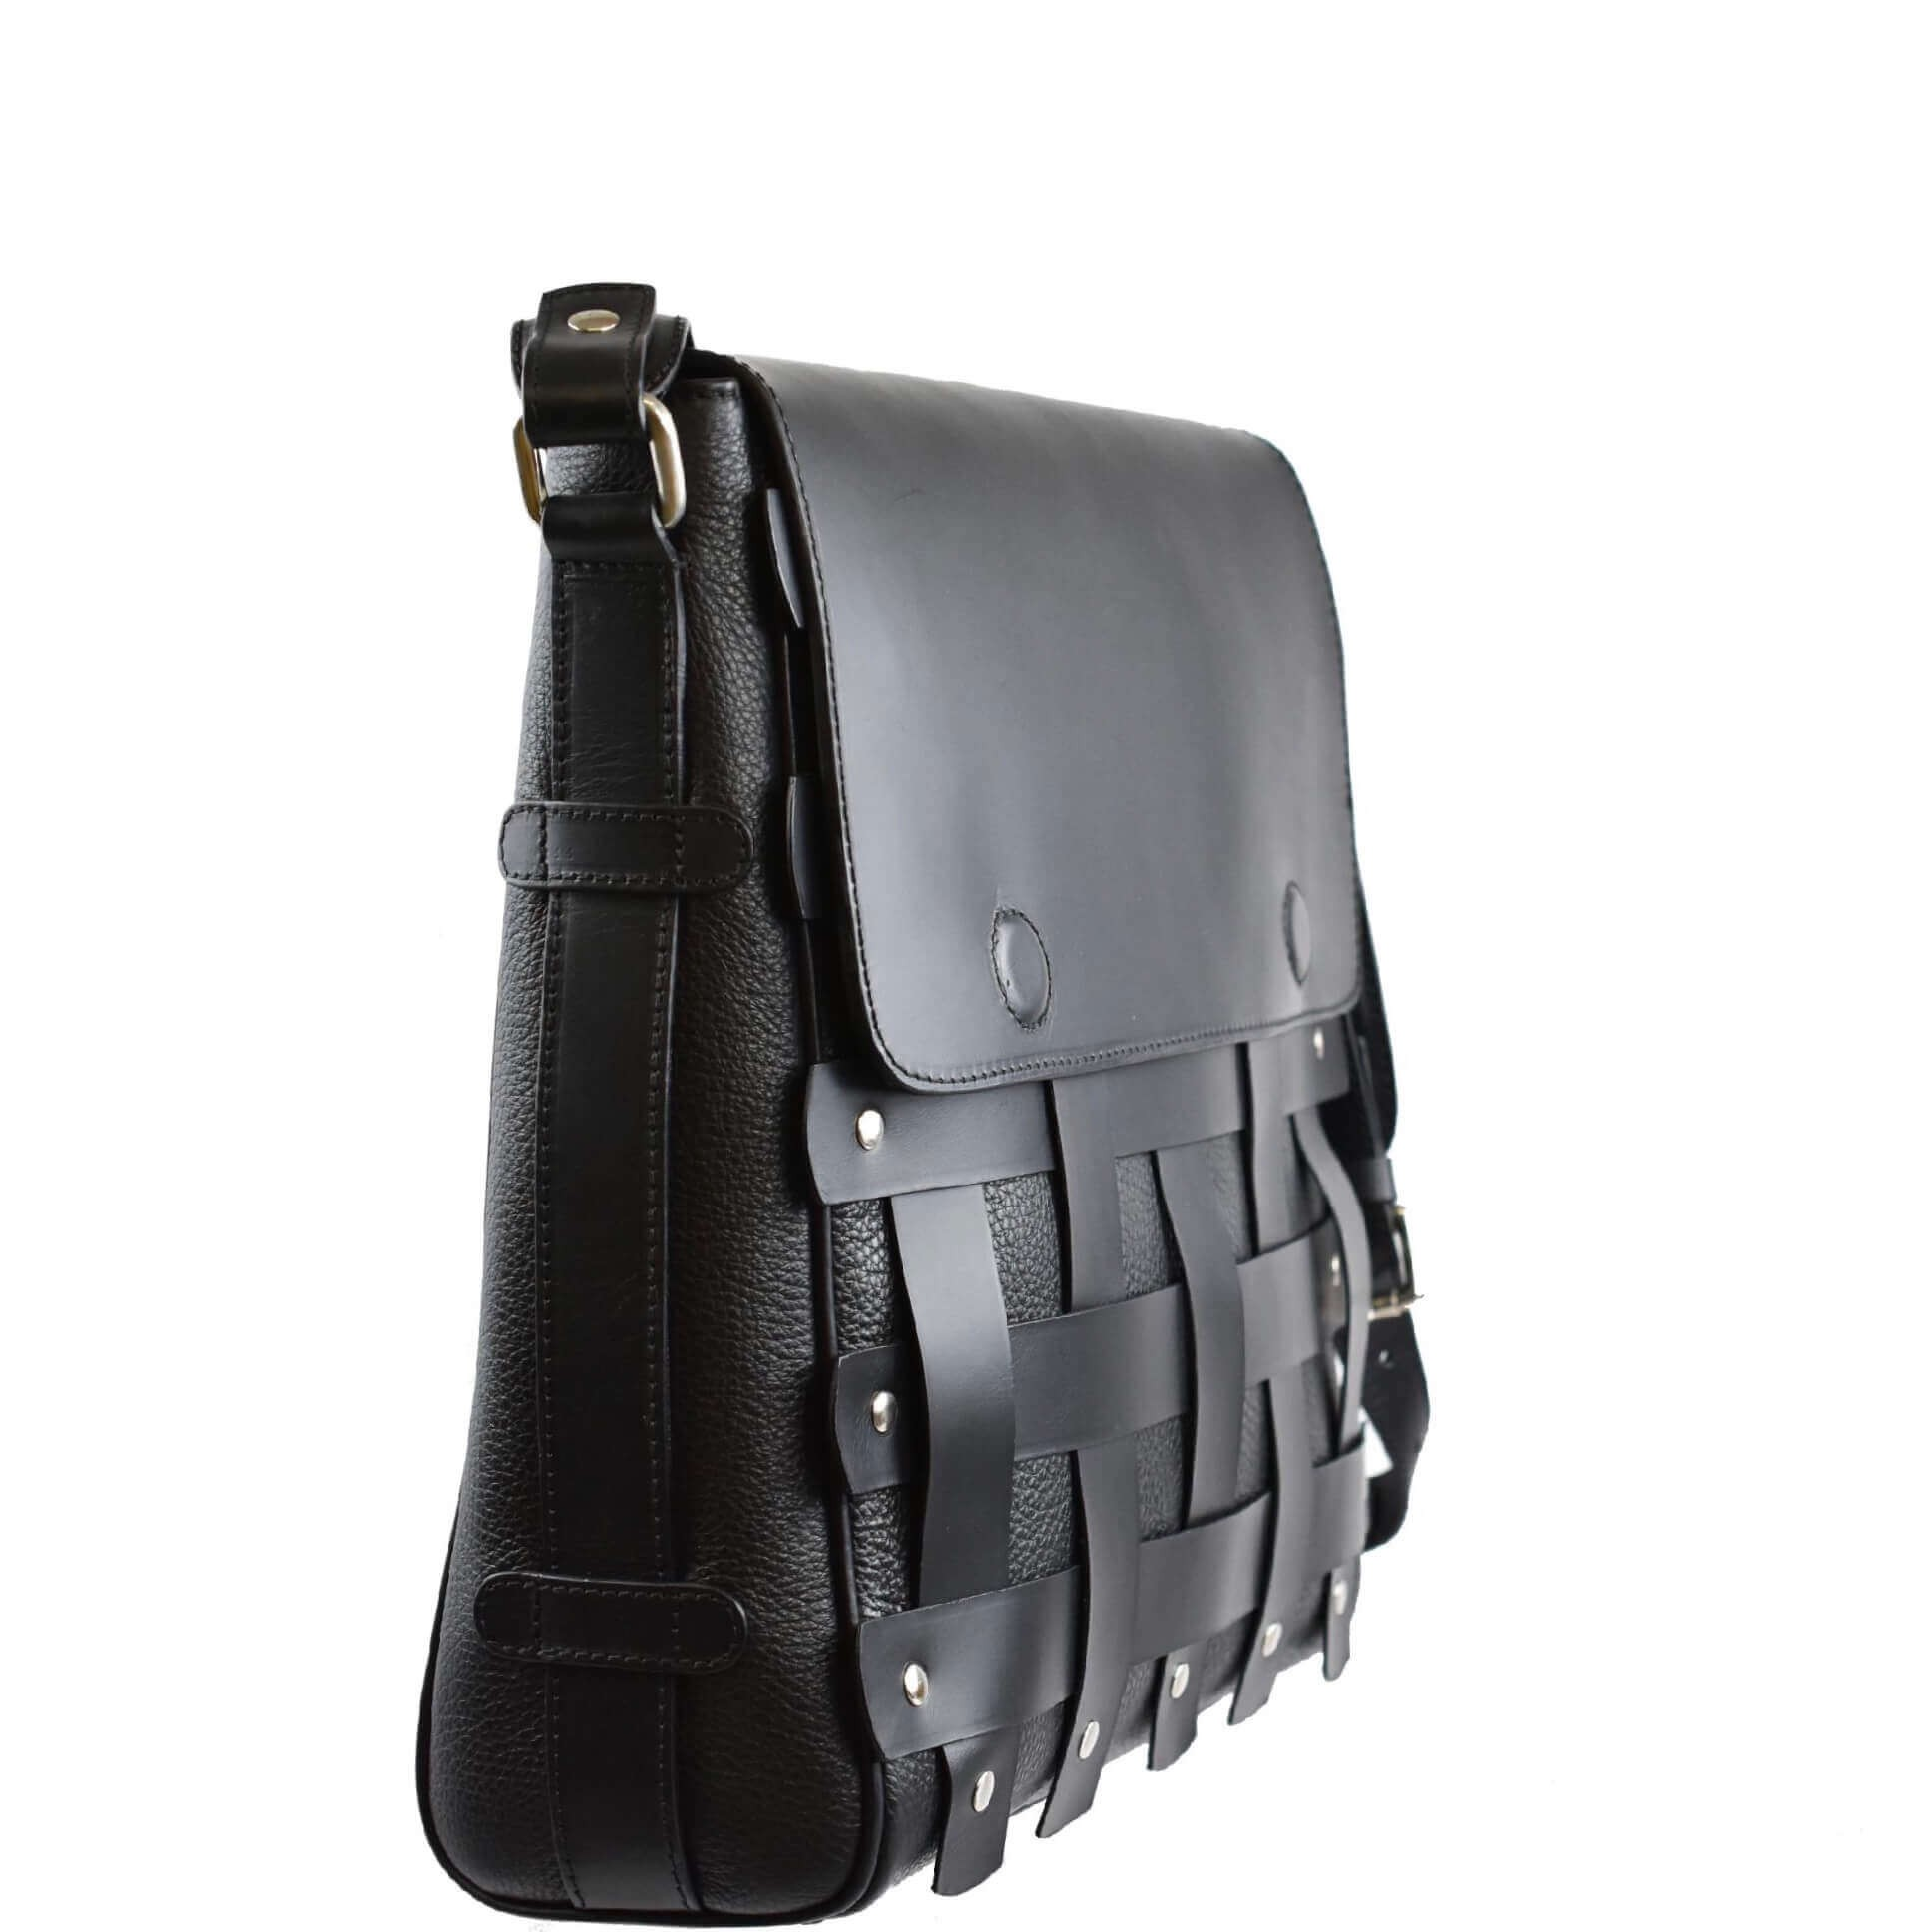 Black Crossbody Bag. Apolo